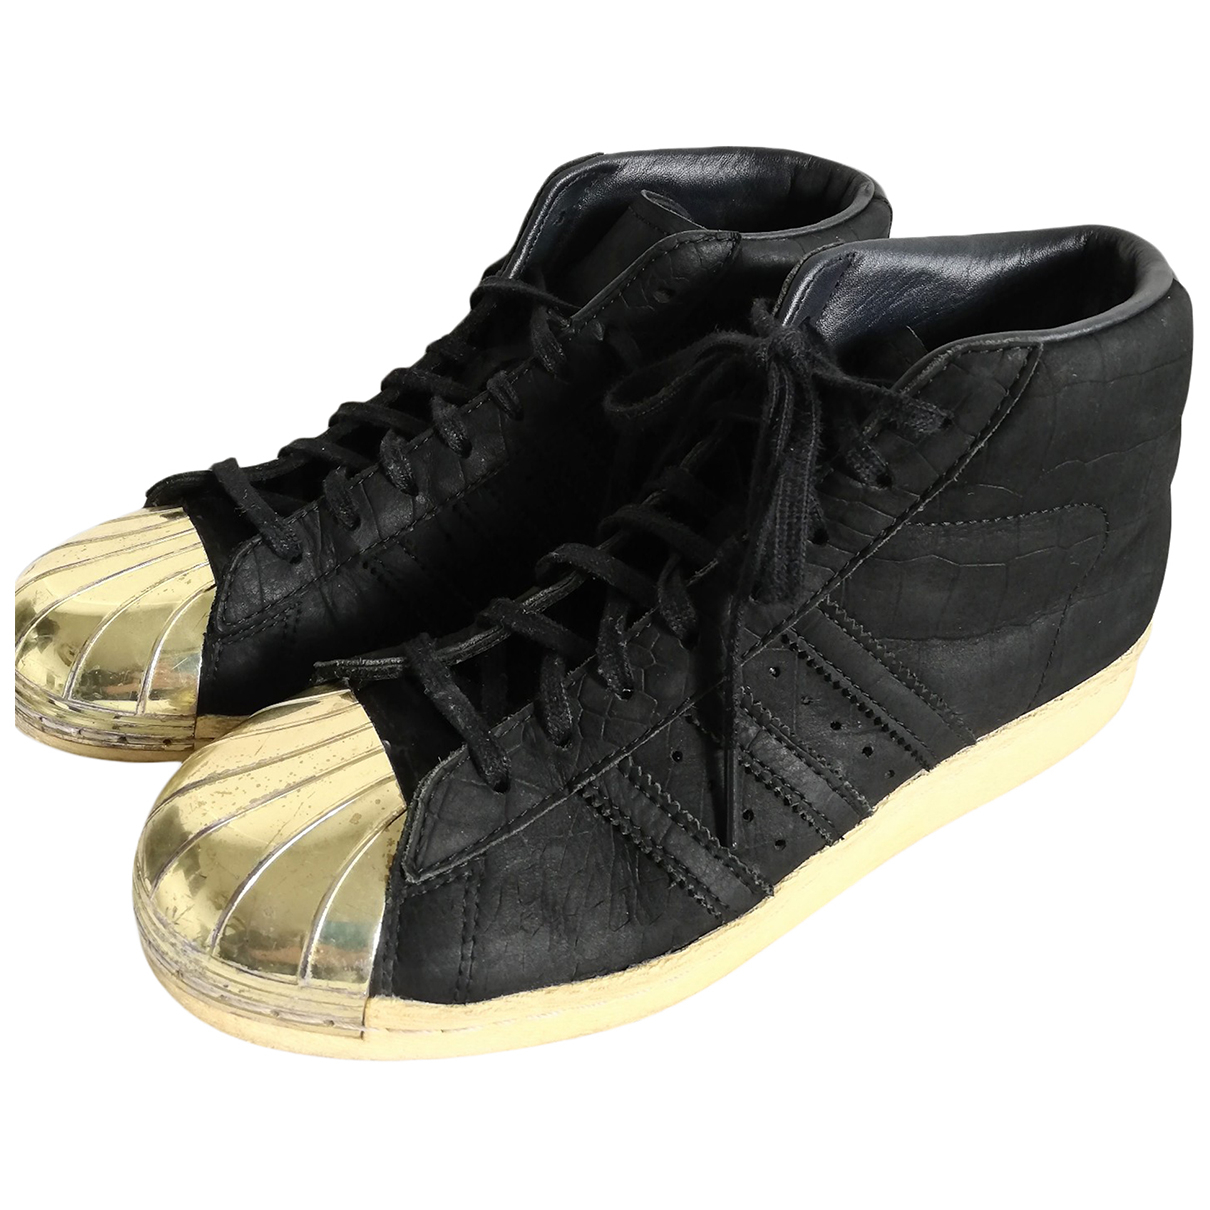 Adidas Superstar Sneakers in  Schwarz Leder